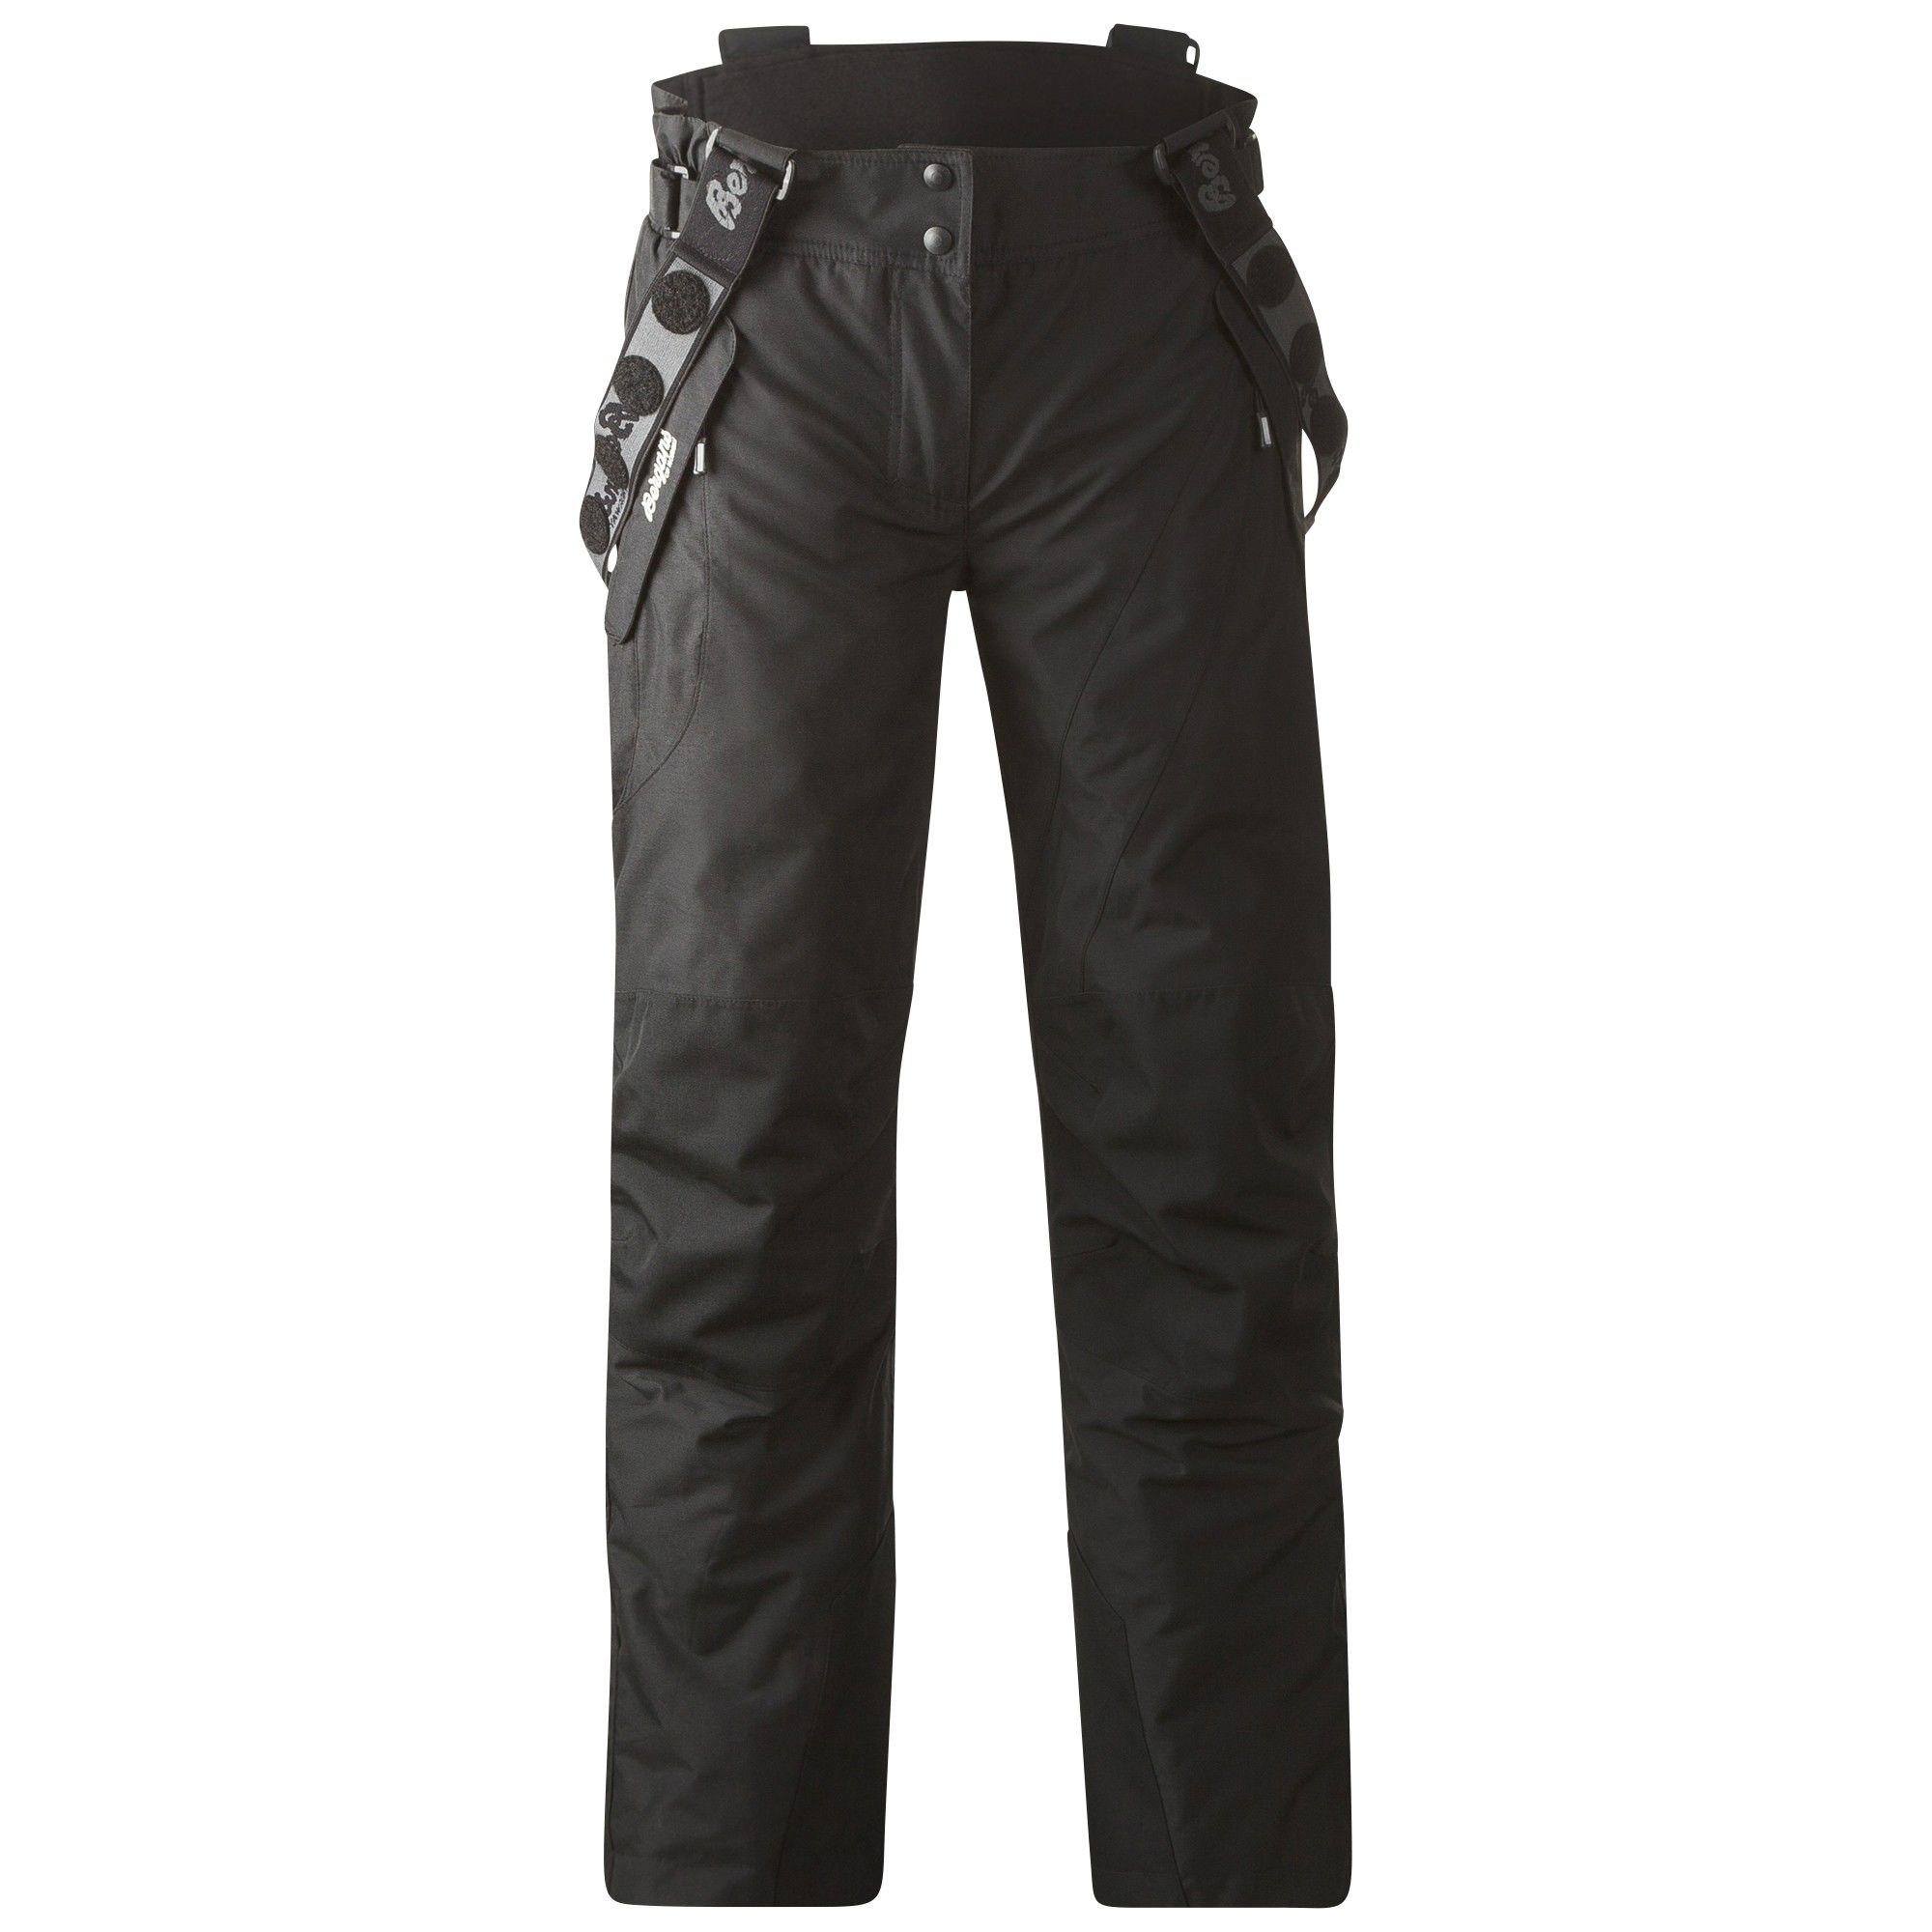 Bergans Hovden Insulated Youth Pants Schwarz, 128 -Farbe Black, 128